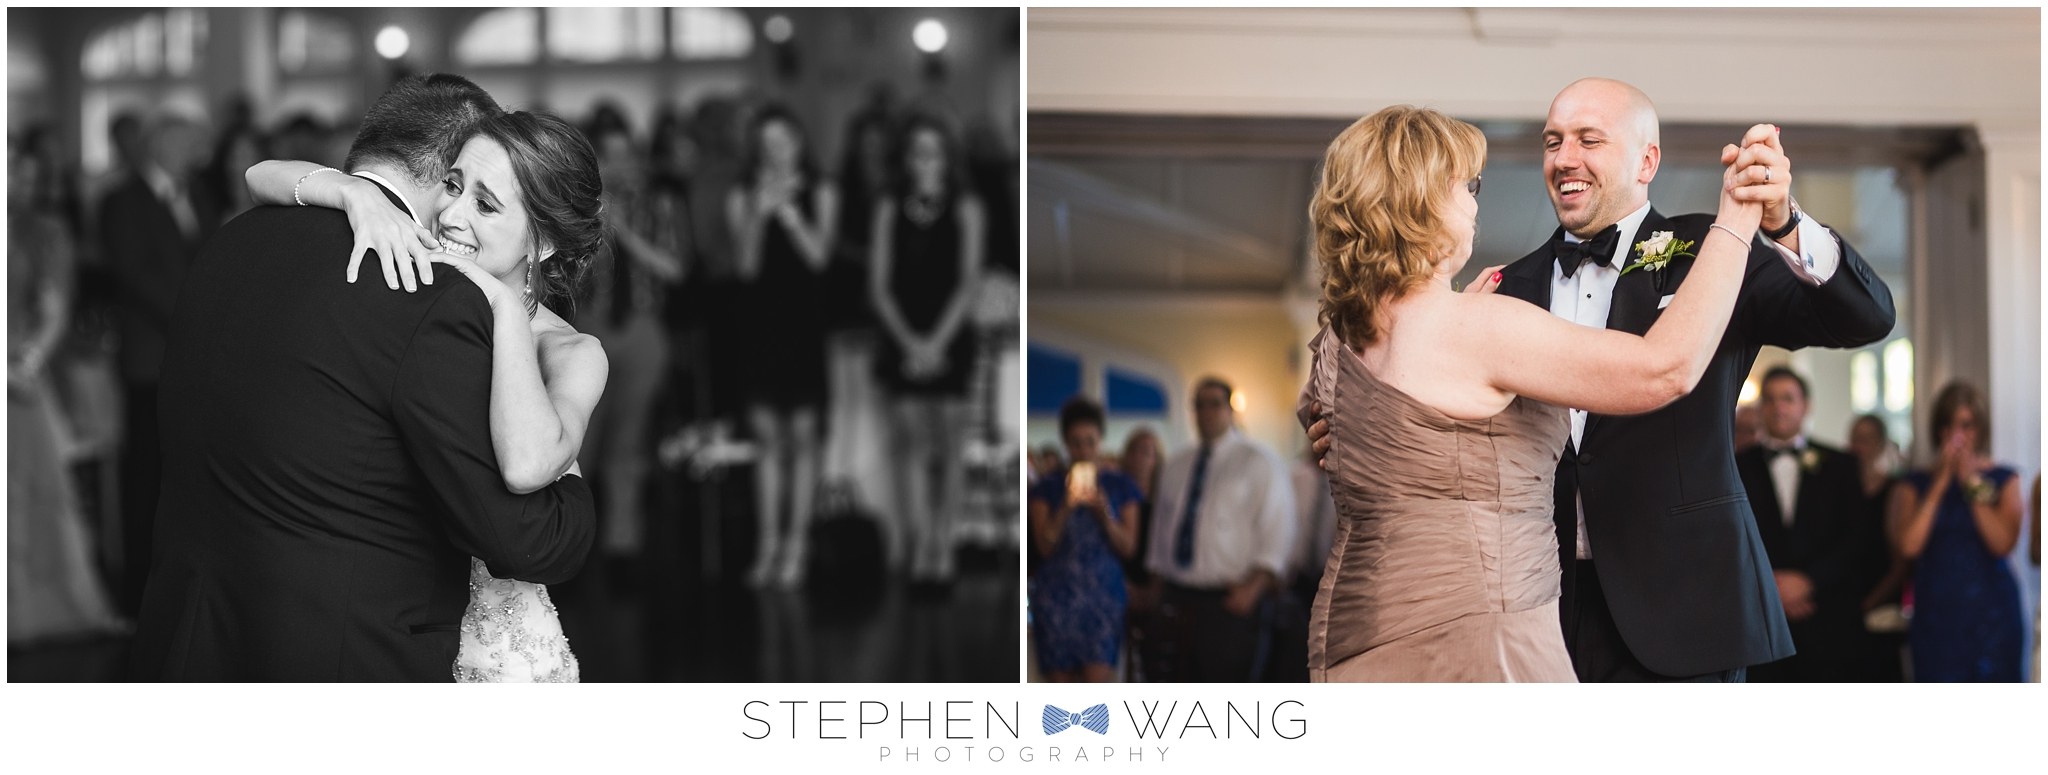 Stephen Wang Photography wedding photographer whitby castle wedding rye ny connecticut photographer philadlephia photographer pennsylvania wedding photographer bride and groom00029.jpg